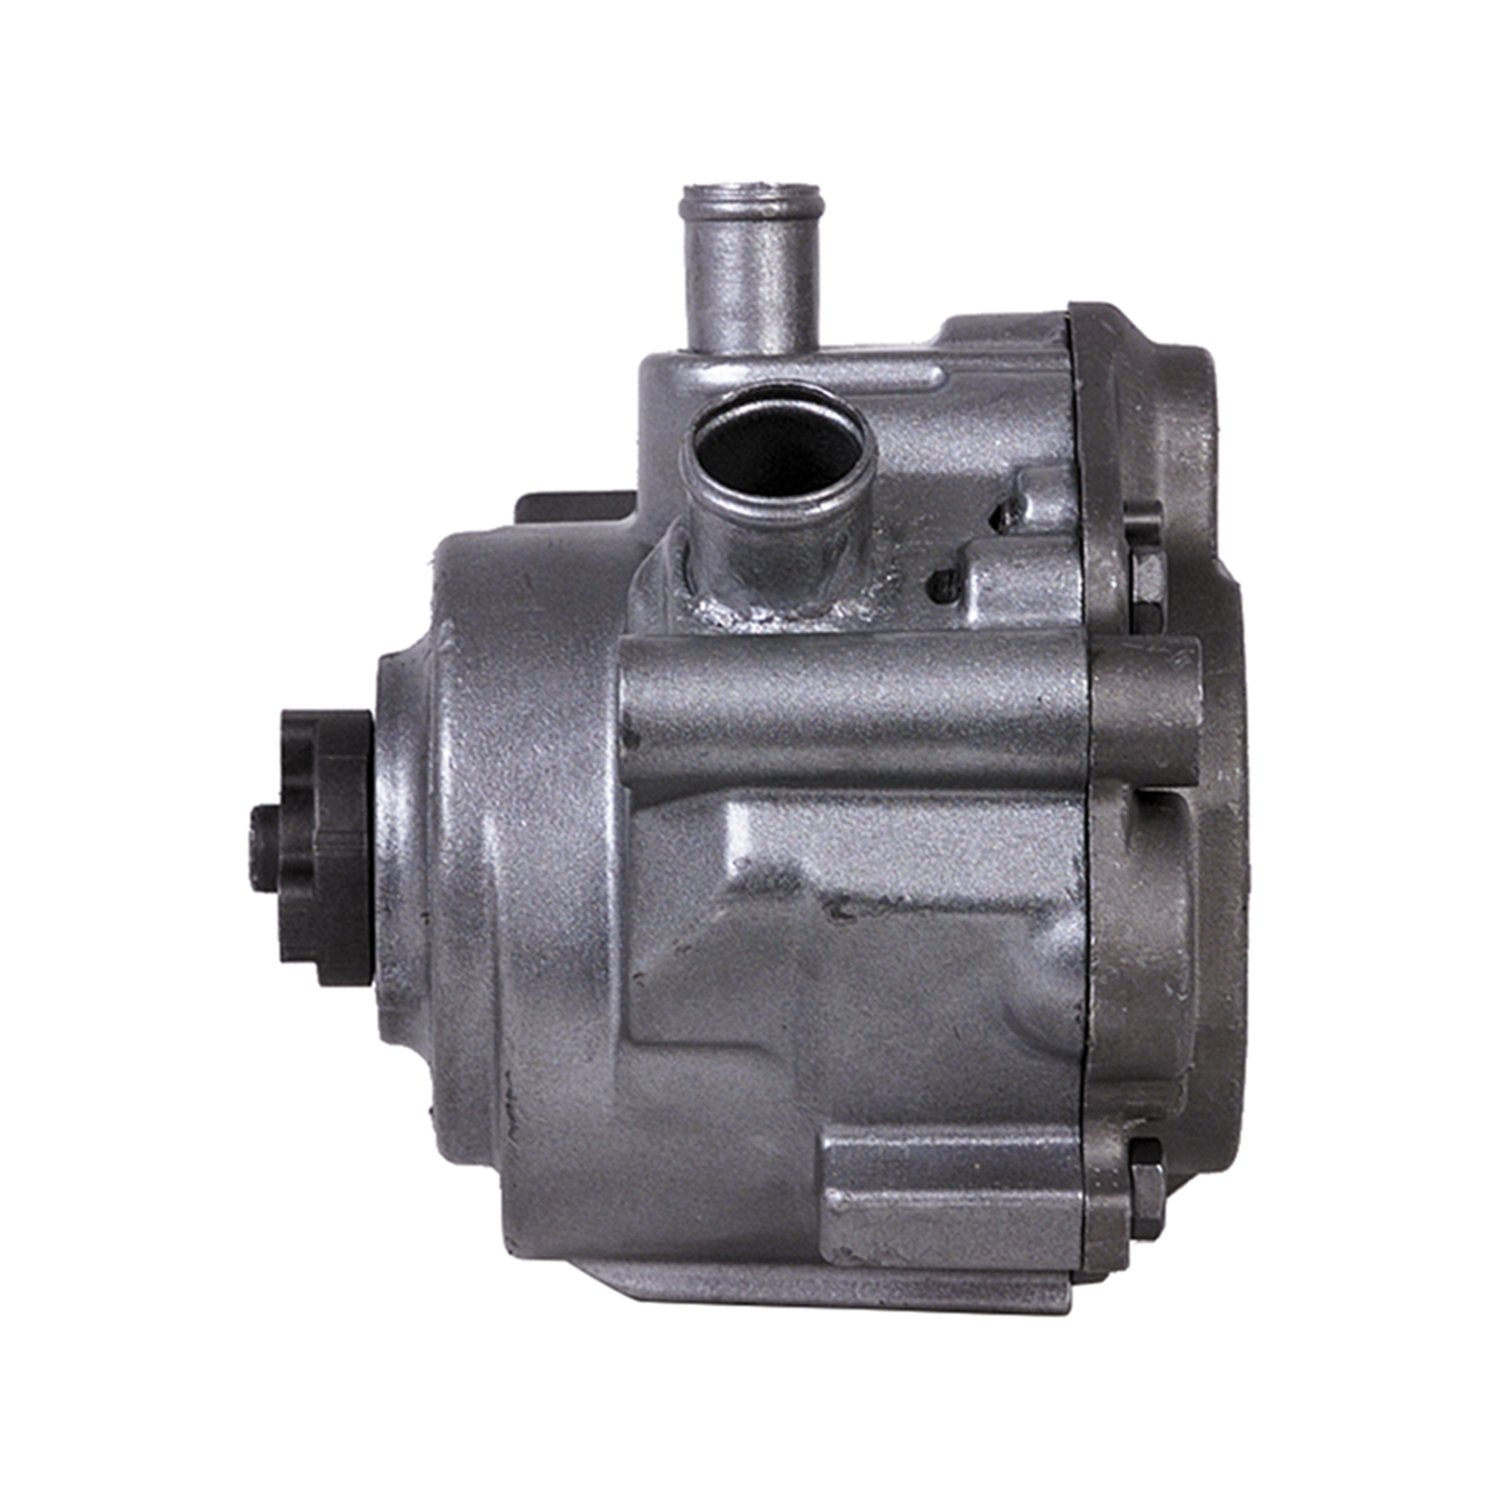 Cardone 32-614 Remanufactured Domestic Smog Pump